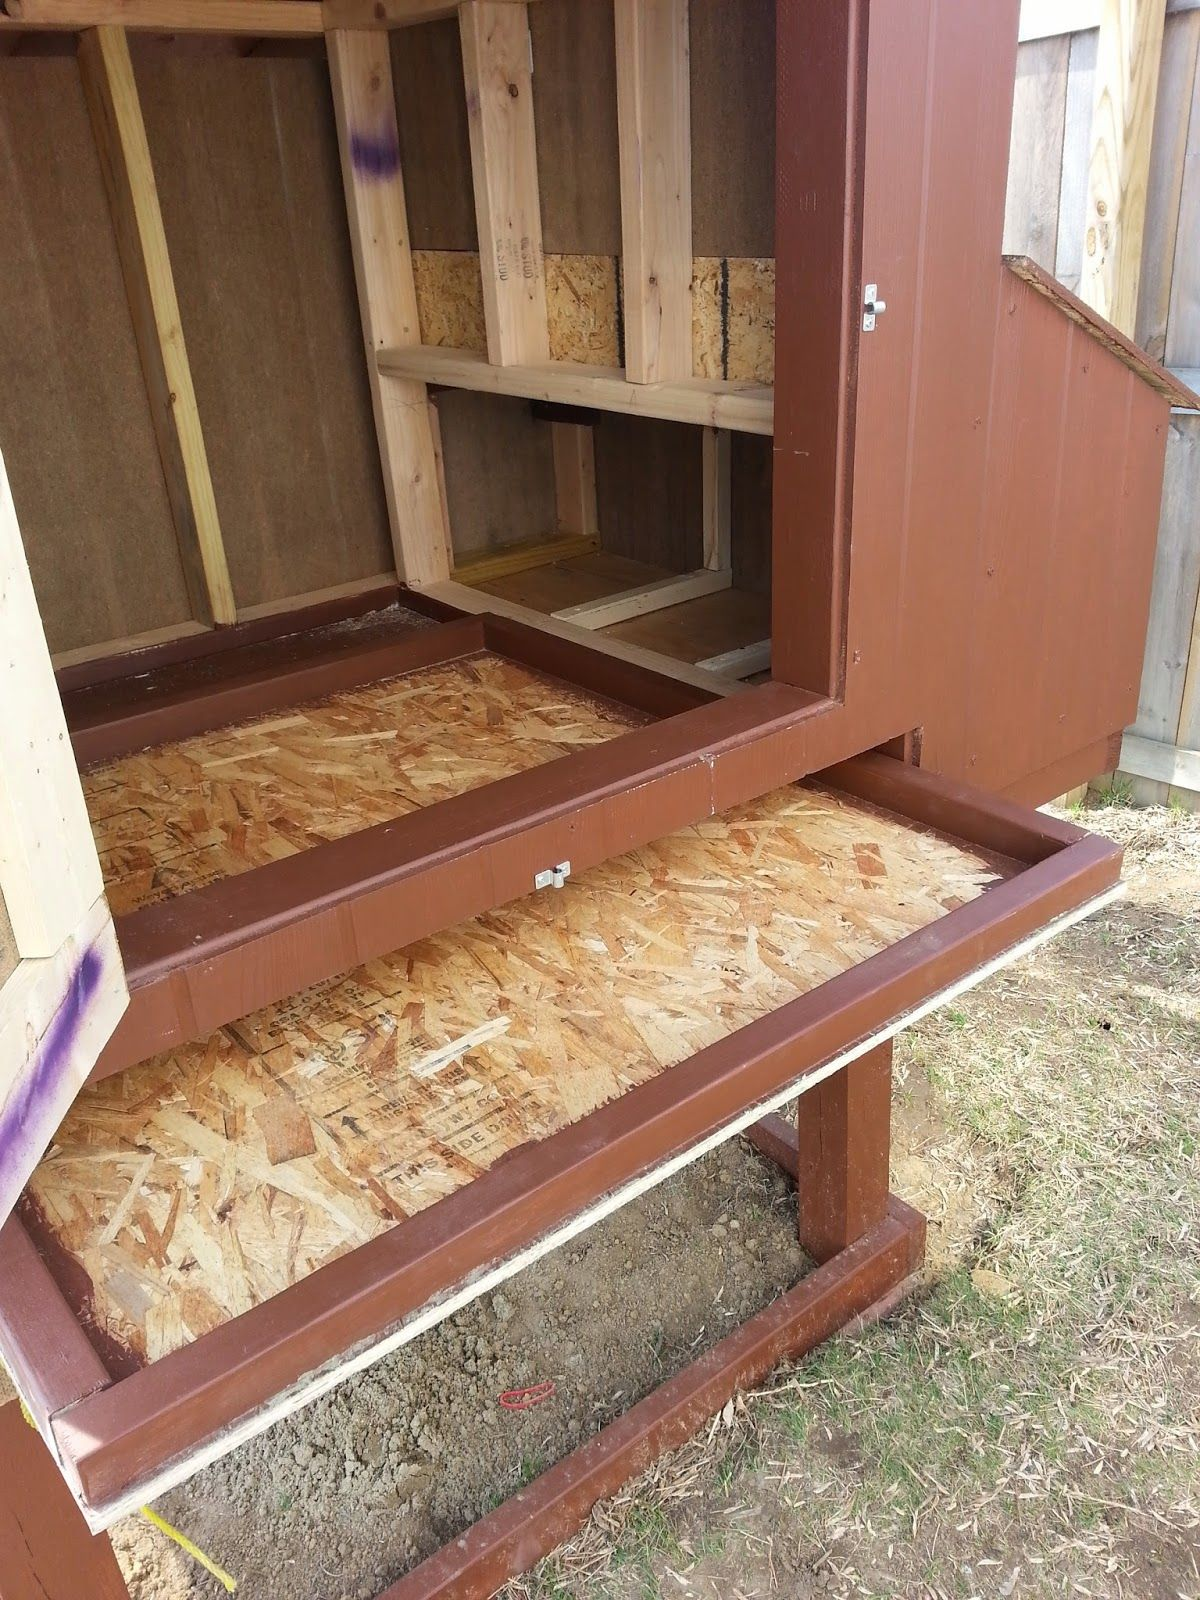 Easy to clean chicken coop add latch on right and of front